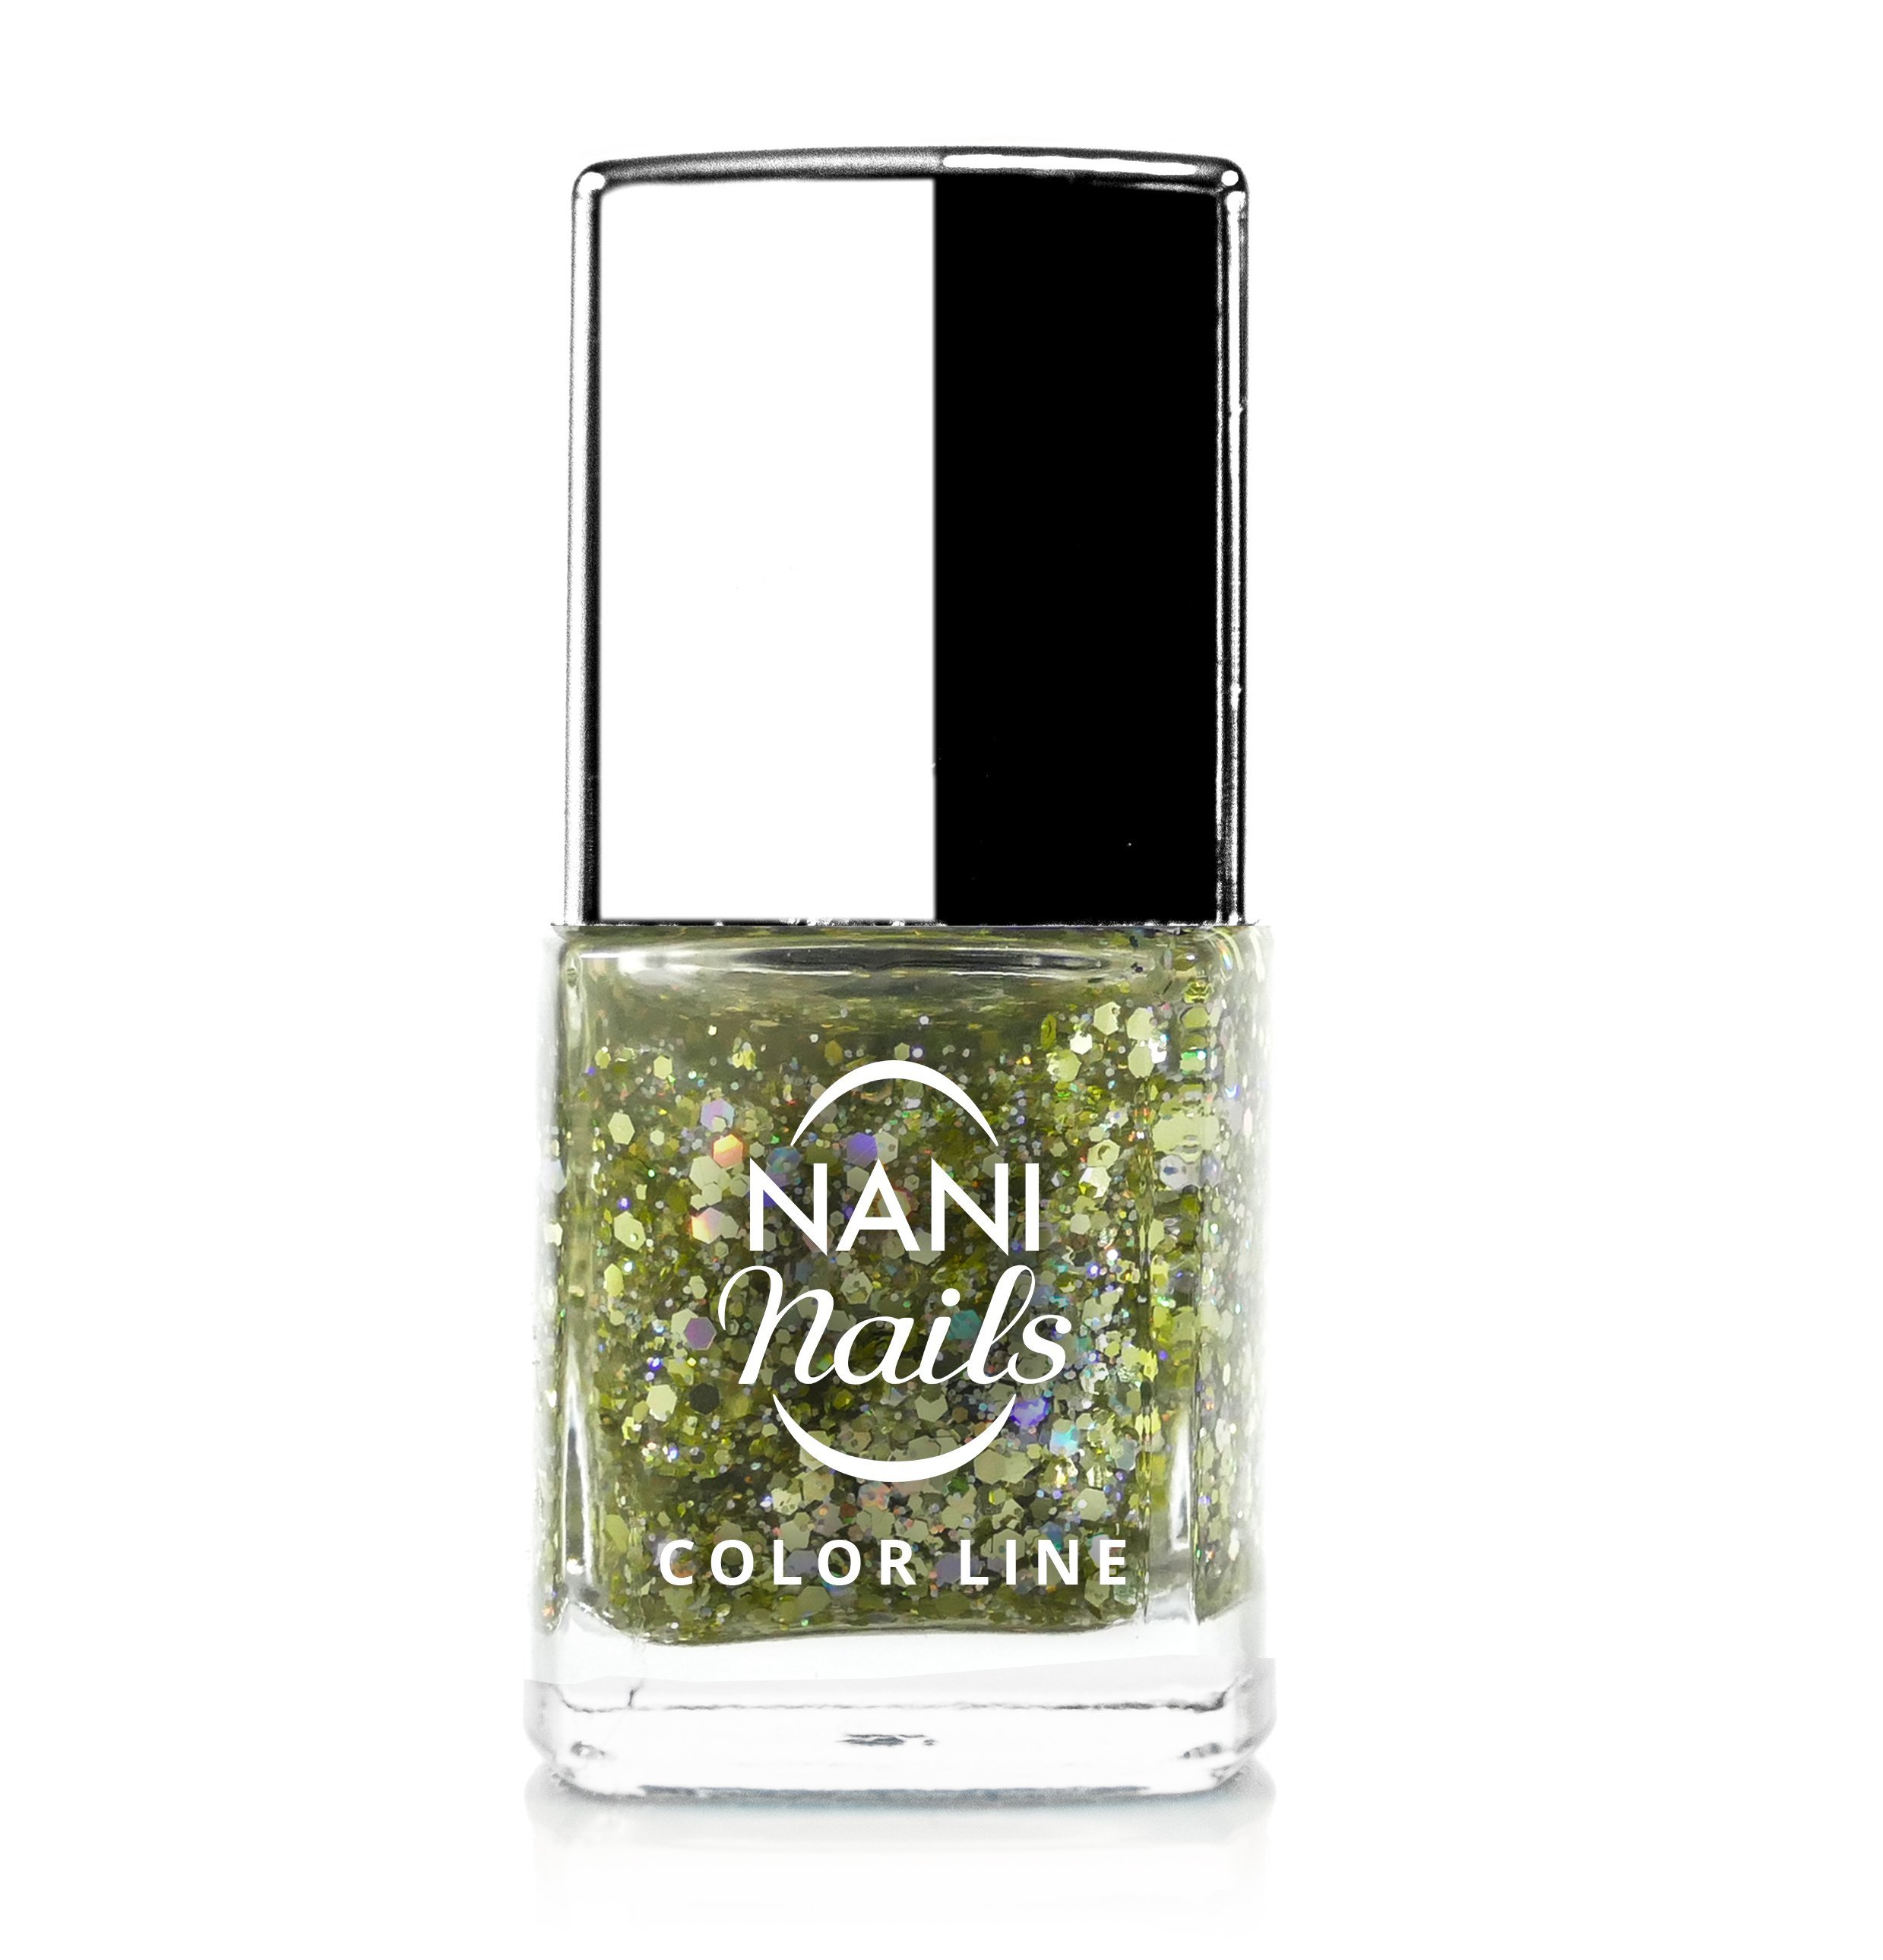 NANI lak Color Line 9 ml - 102